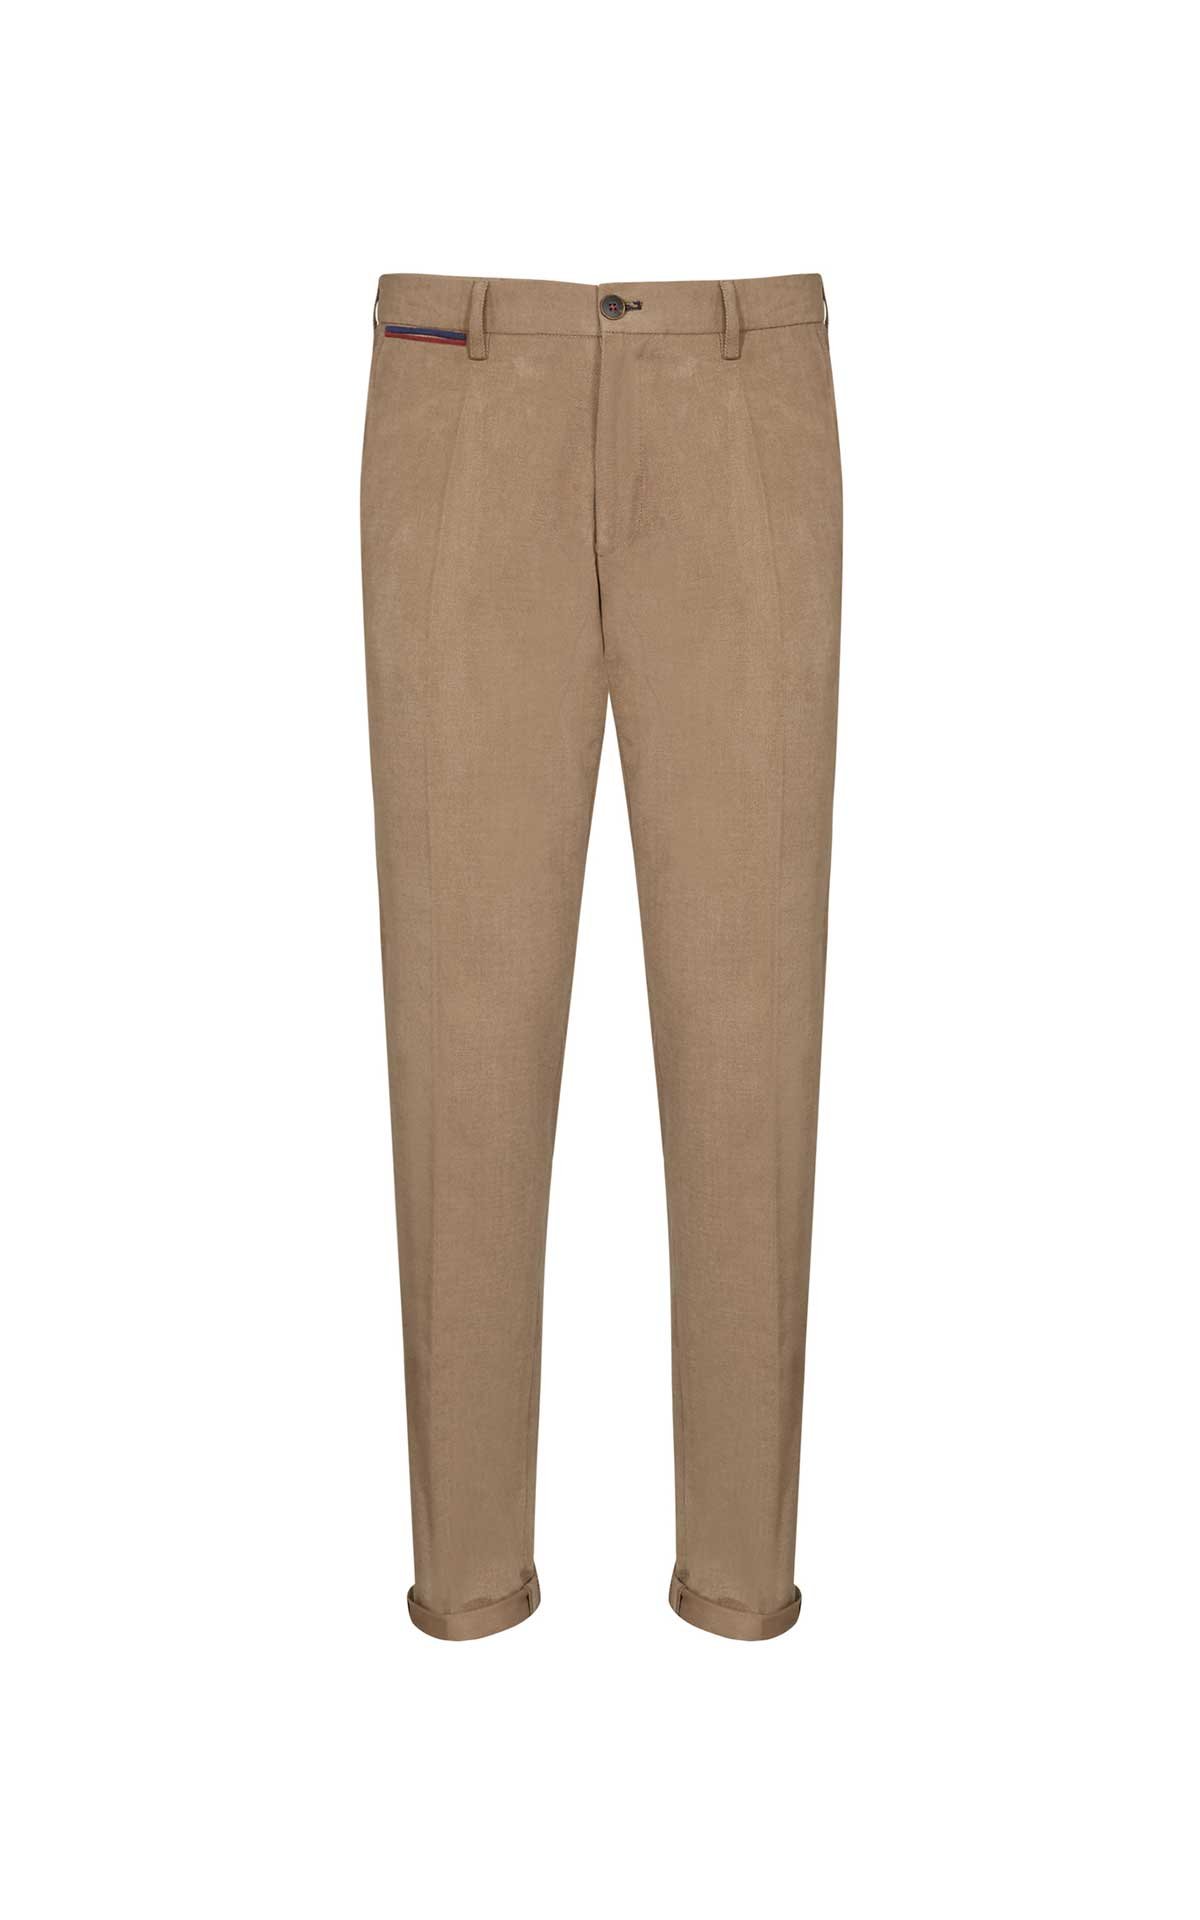 Camel trousers for men from El Ganso